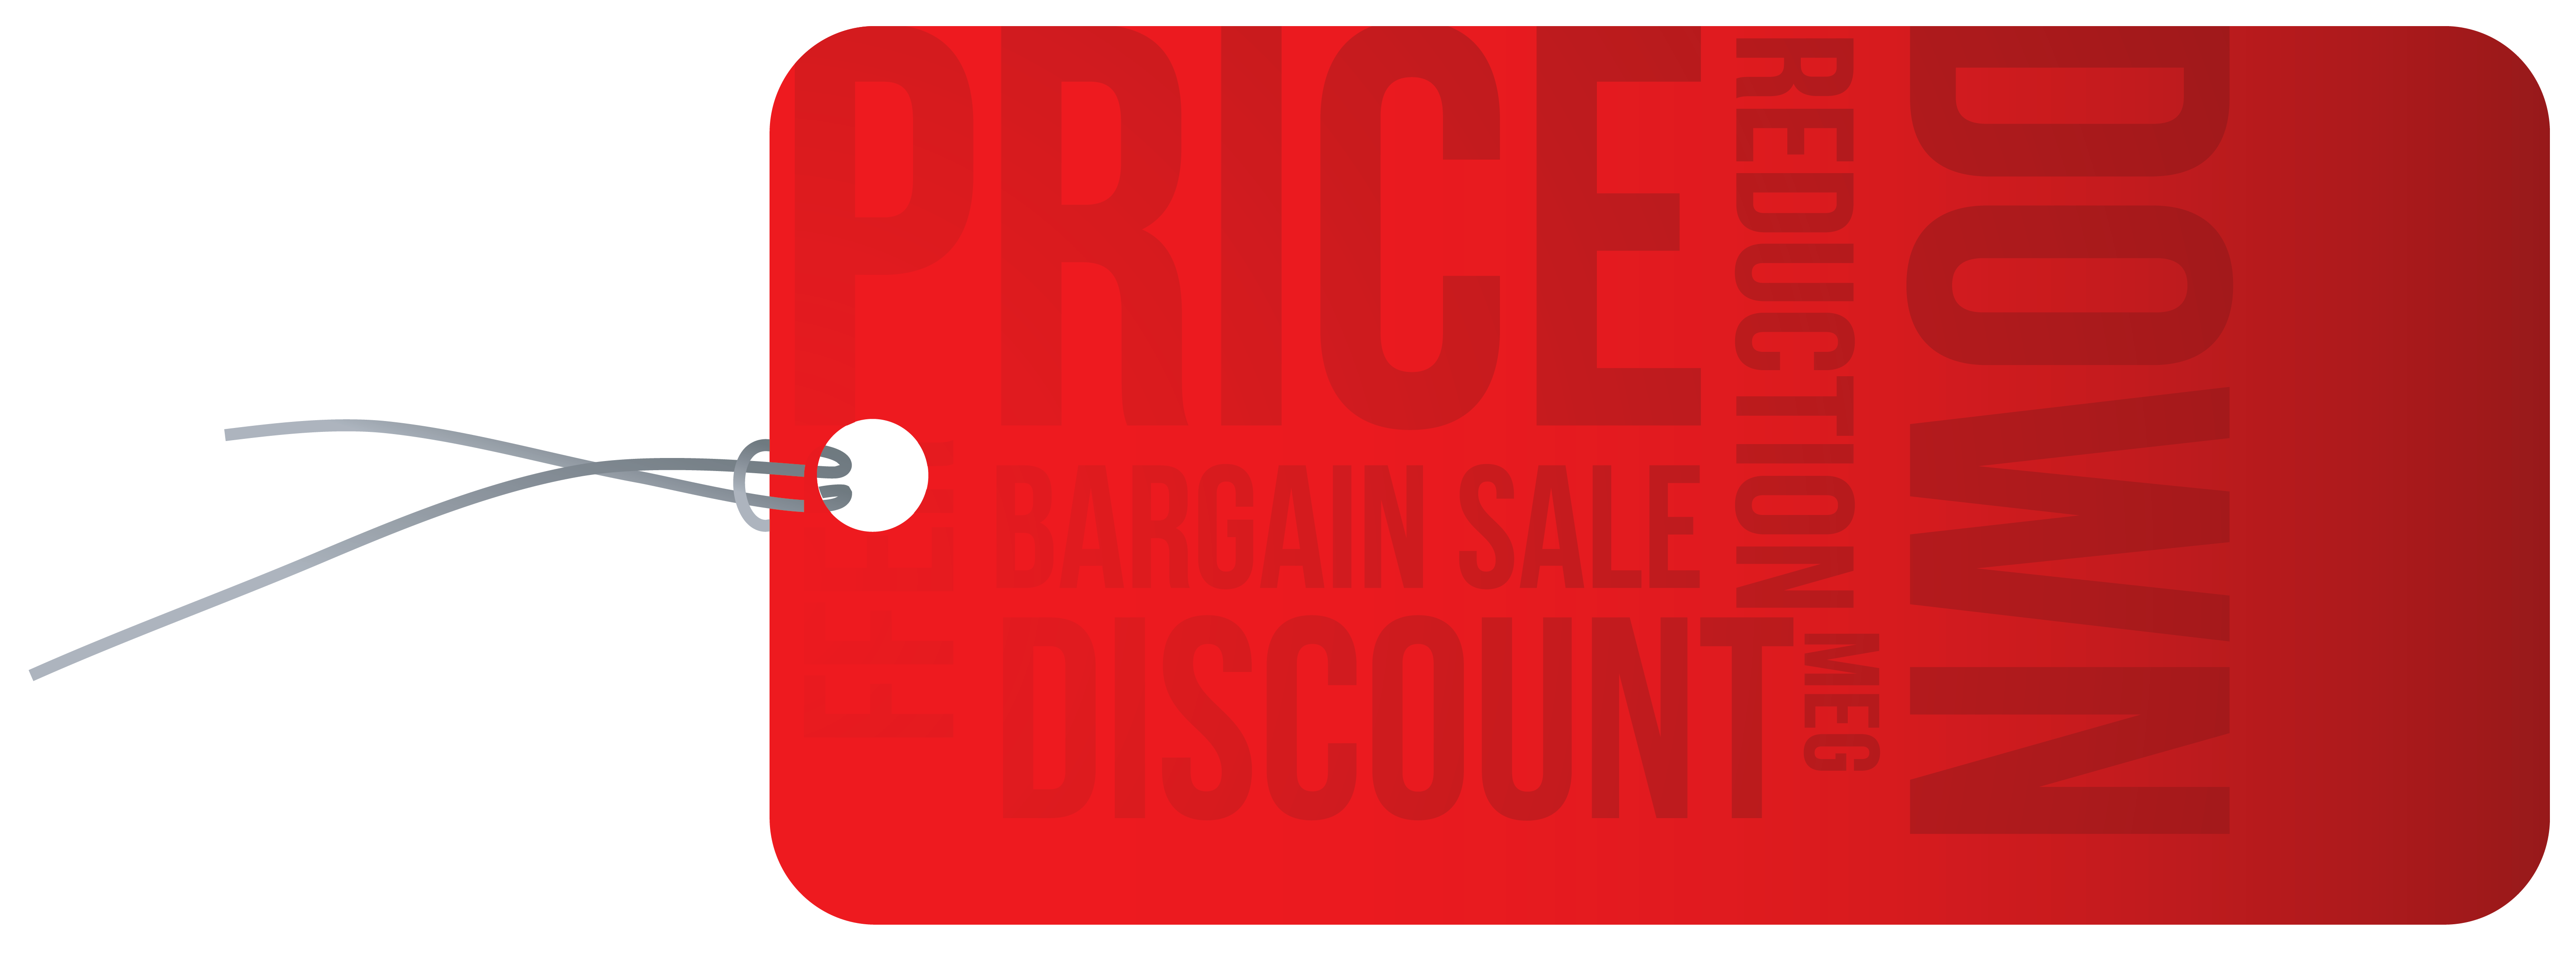 Price label png. Reduction red clipart image